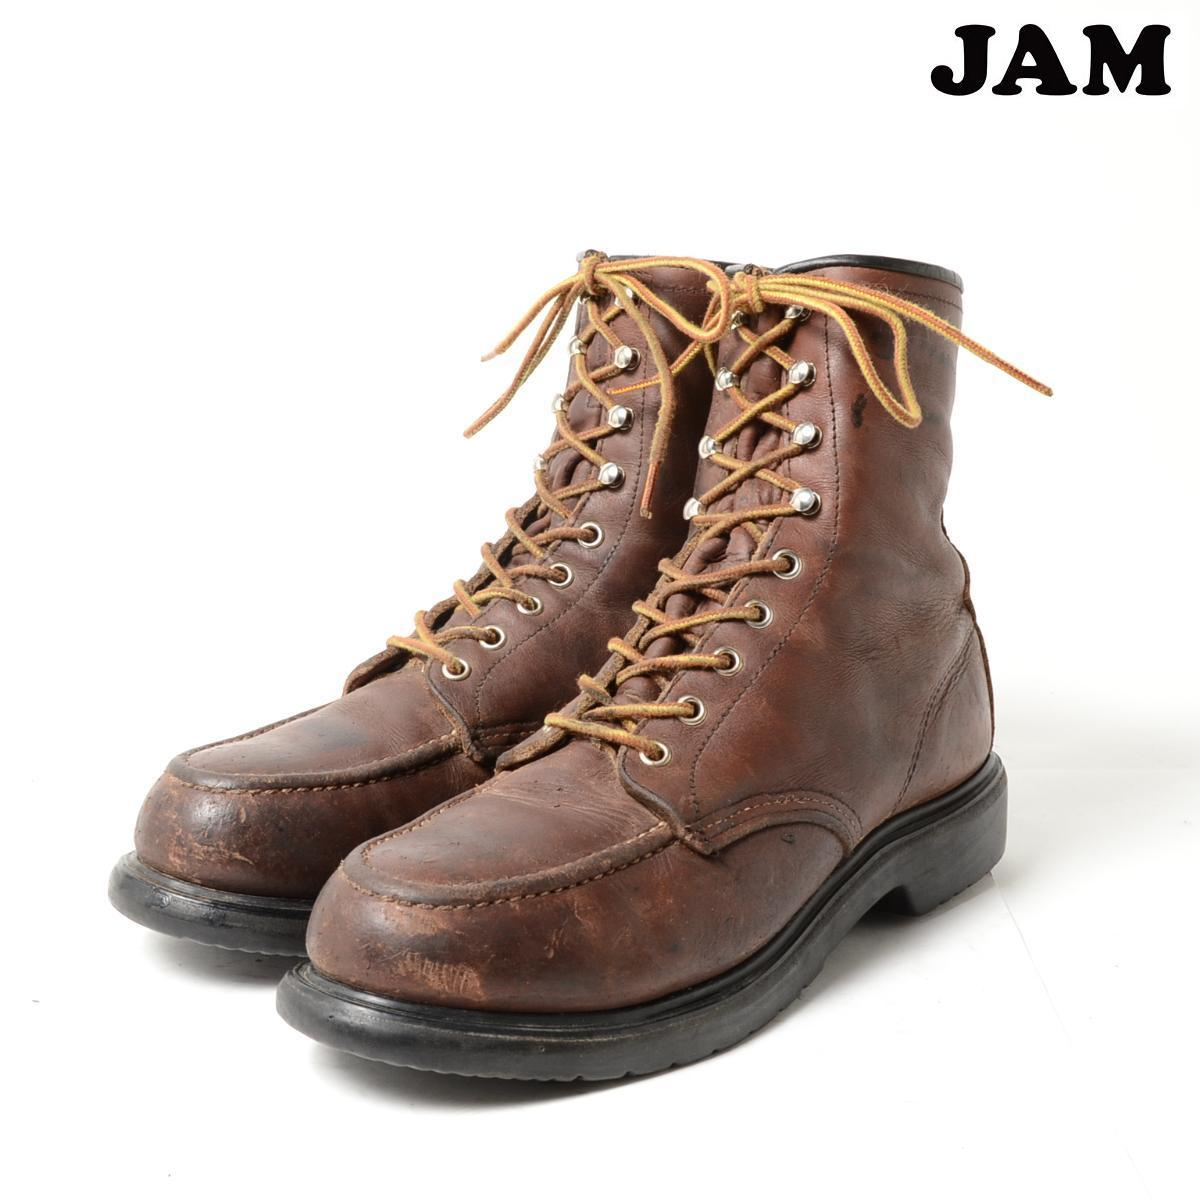 Red Wing Steel Toe Work Boots For Men q64zRDoi